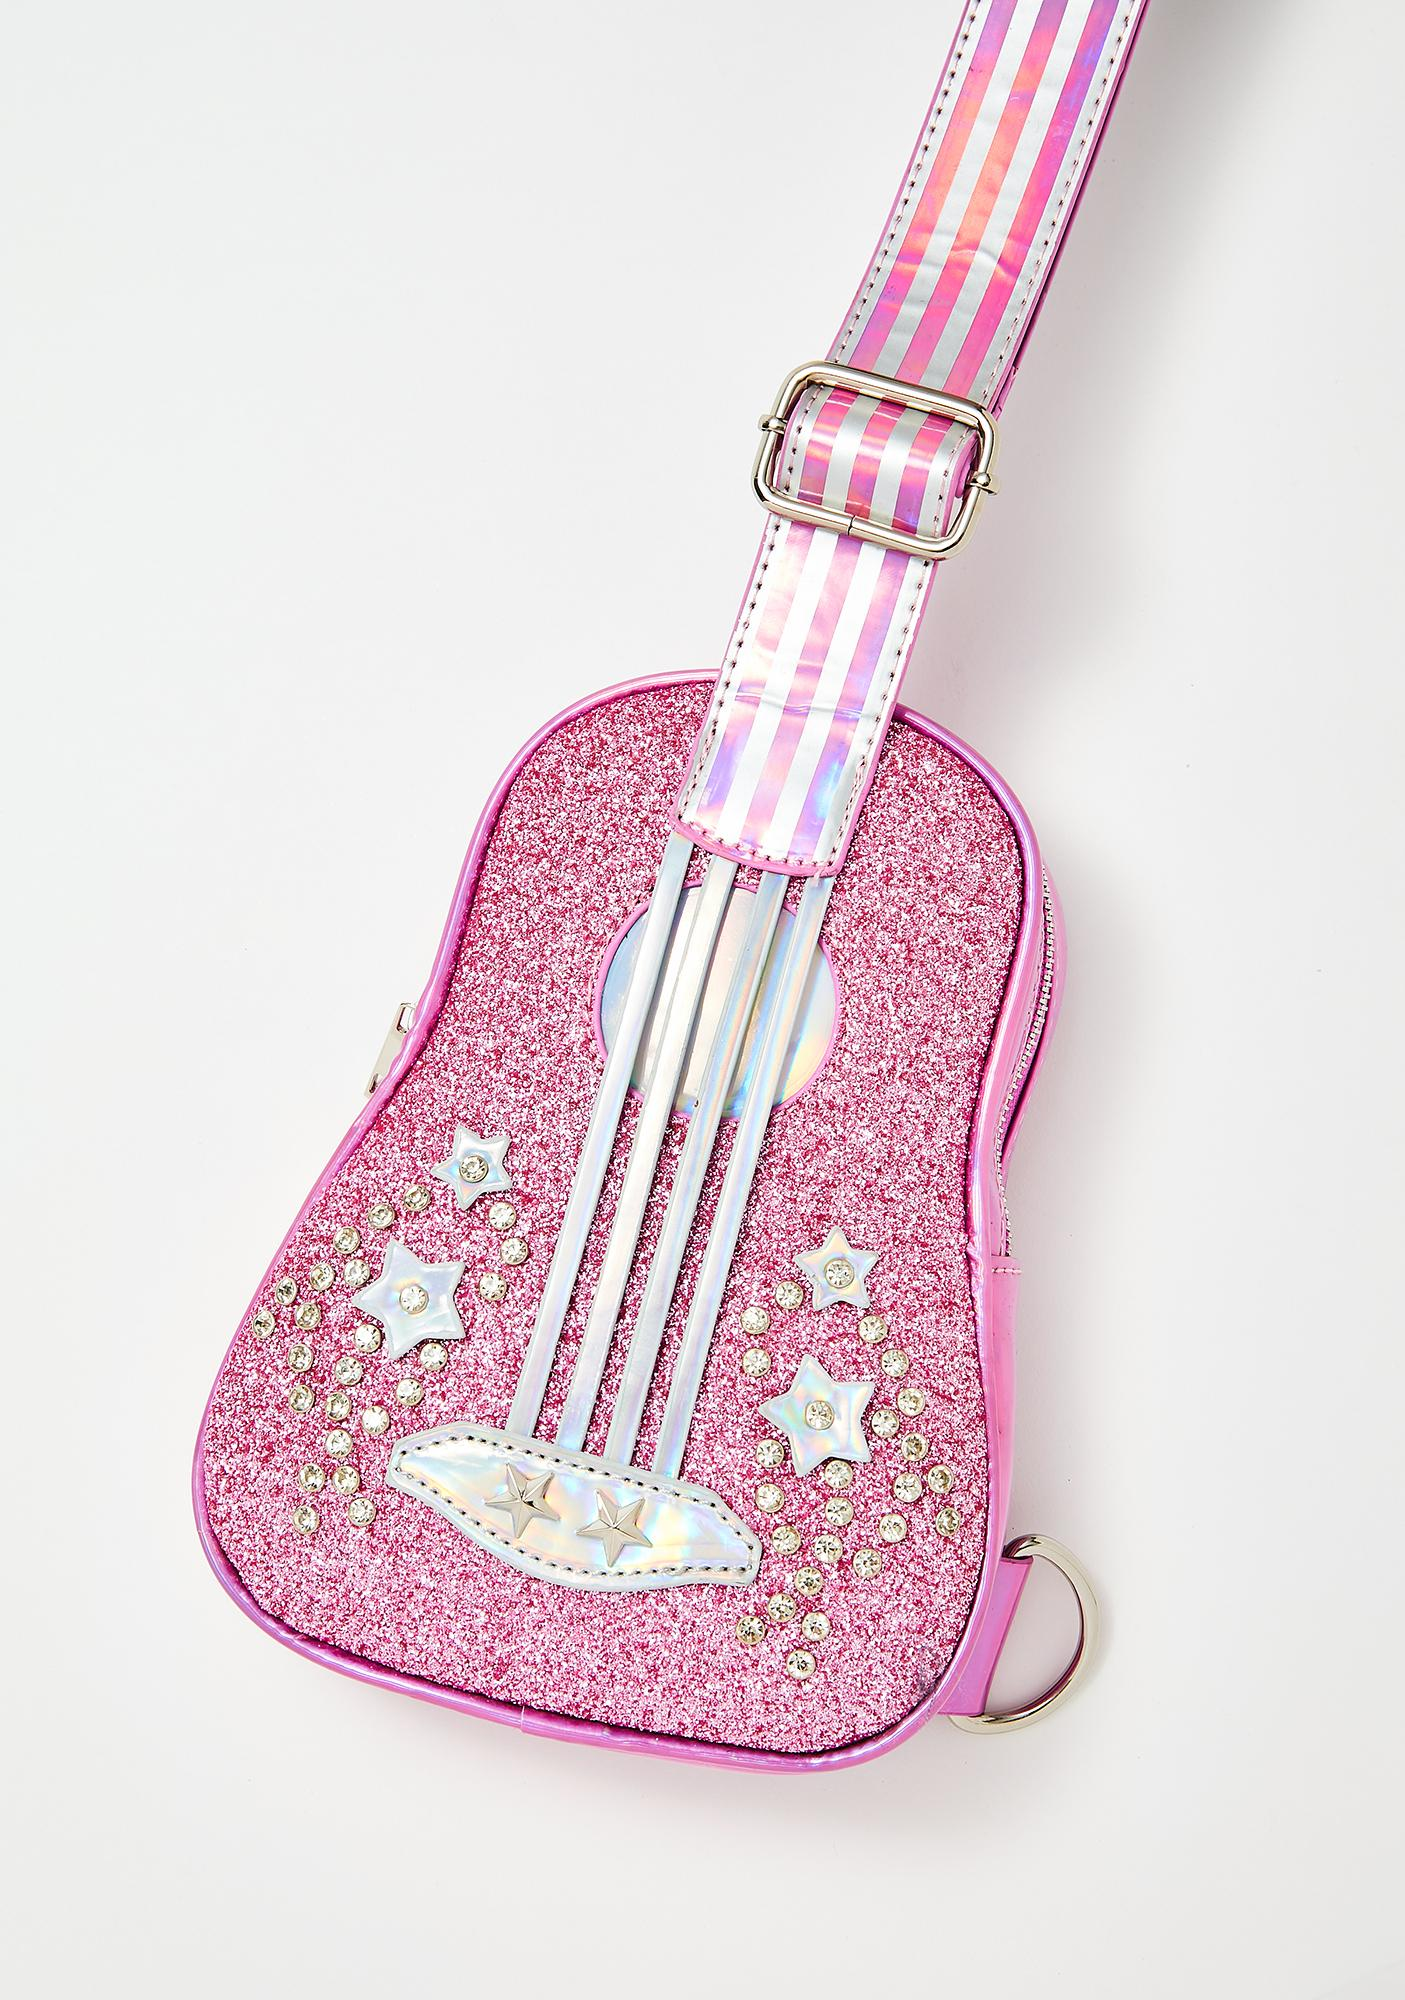 Club Exx Cosmic Heart Strings Ukulele Bag